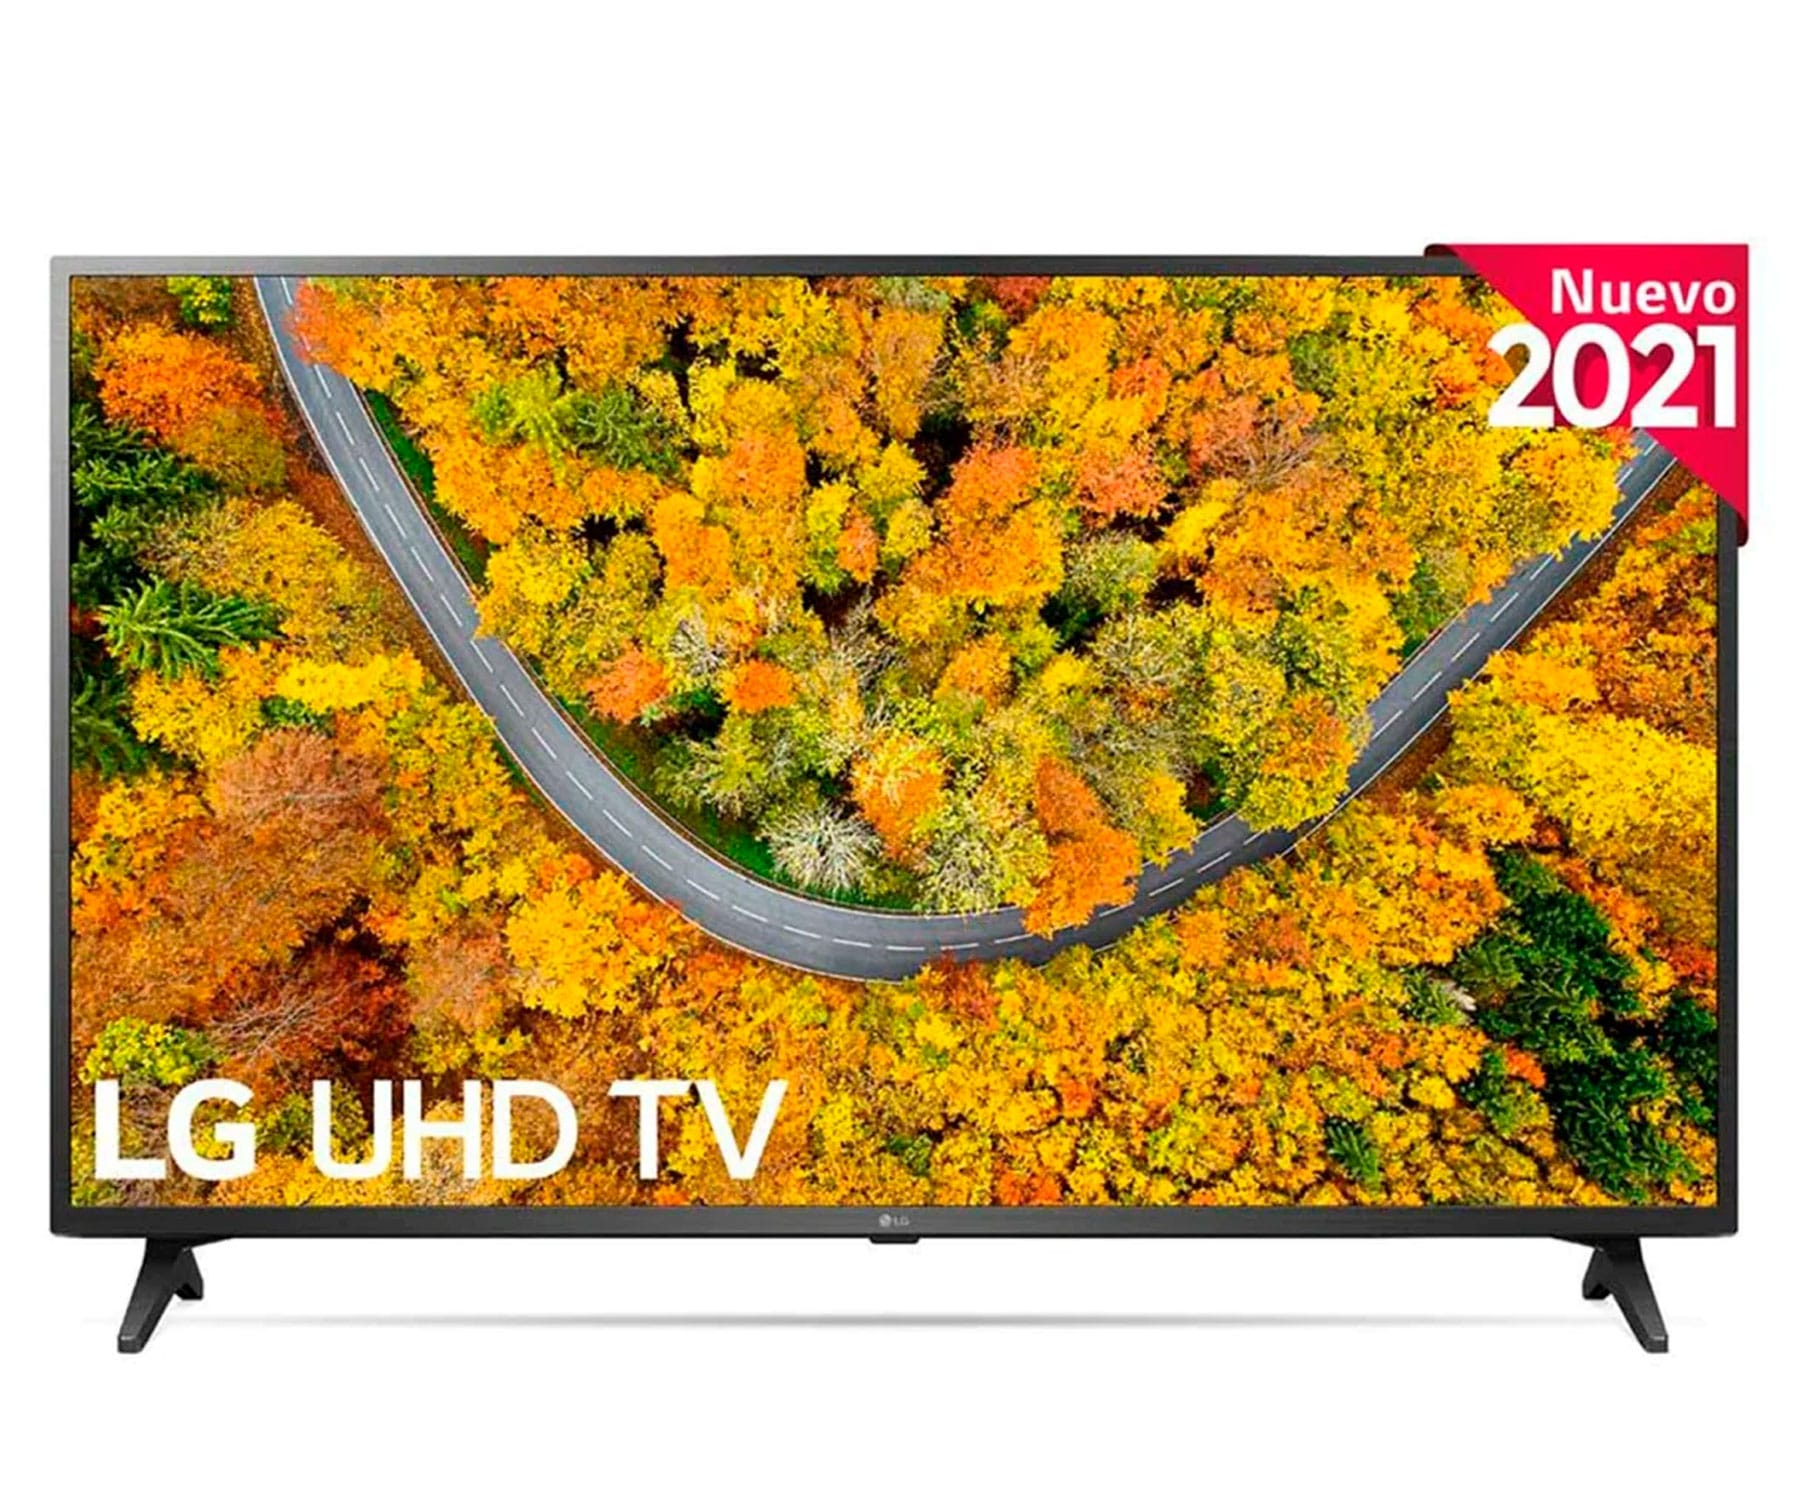 """LG 75UP75006LC 4K UHD 75""""/SMARTTV/WEBOS 6.0/4K QUAD CORE/GAMING TV/COMPATIBLE HDR10 PRO/HLG"""